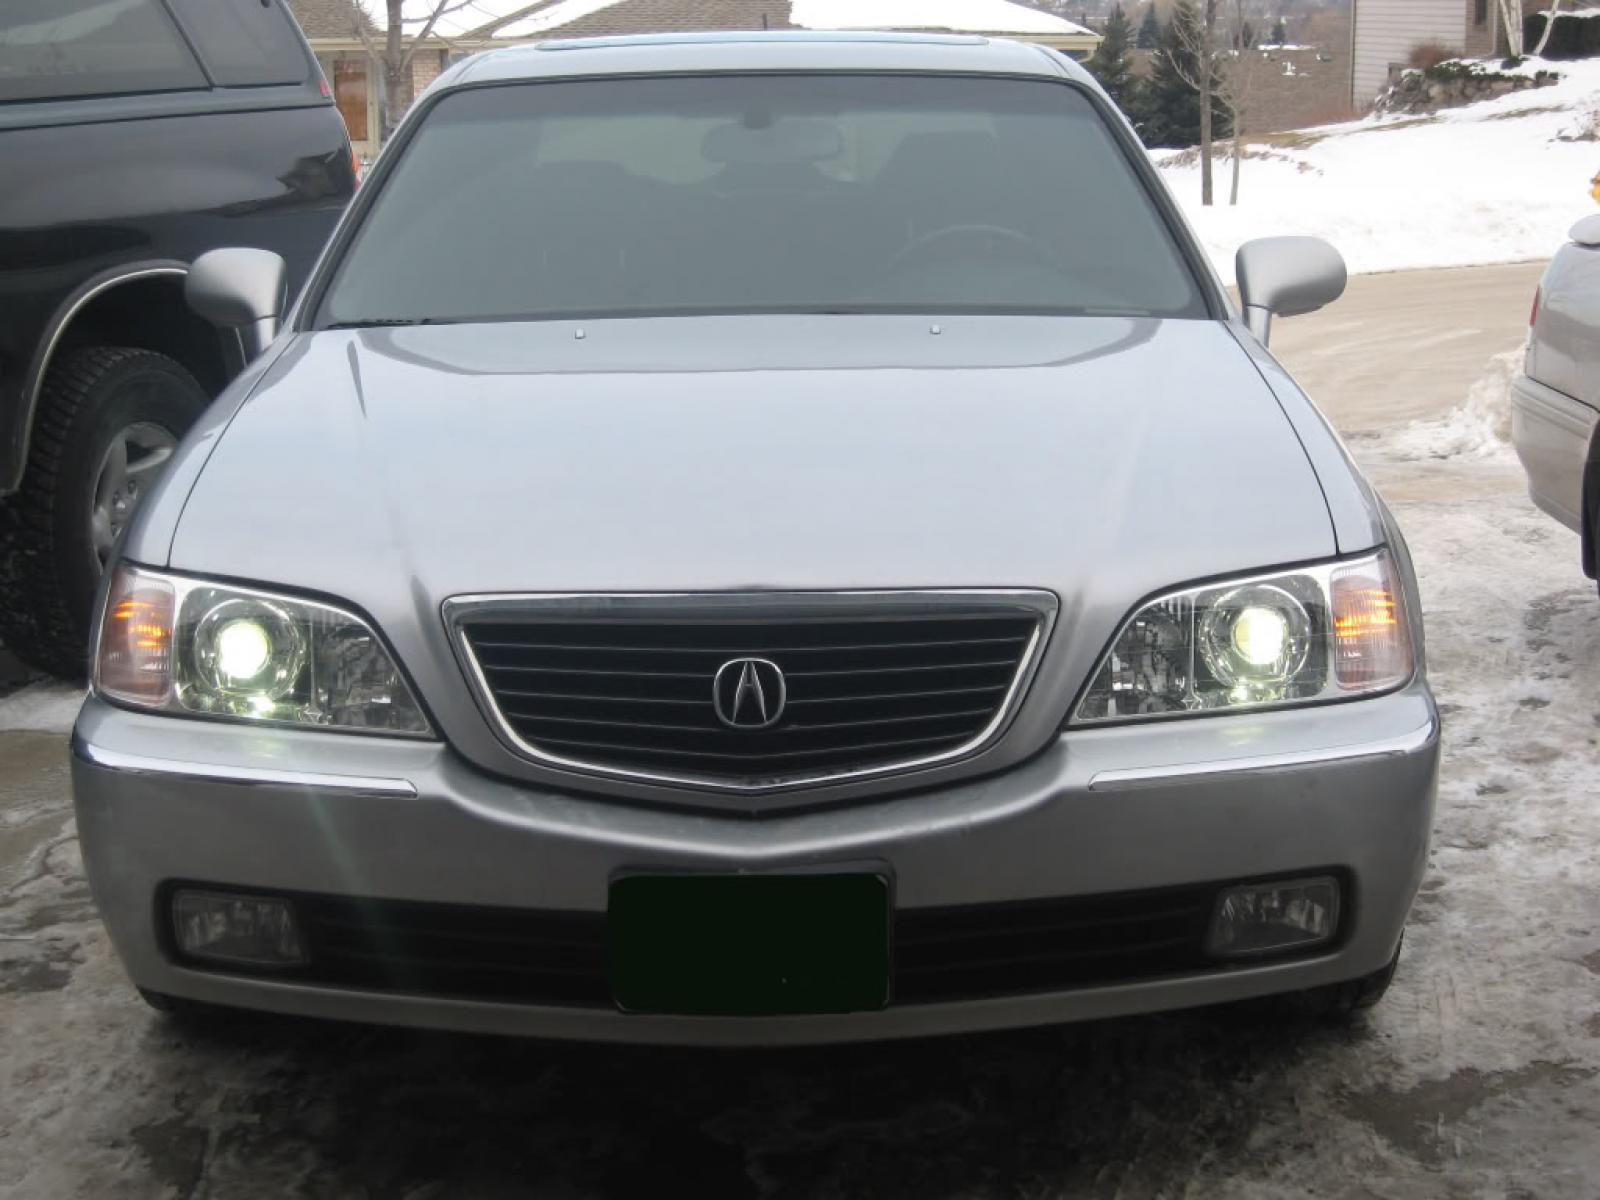 2002 Acura RL - Information and photos - ZombieDrive